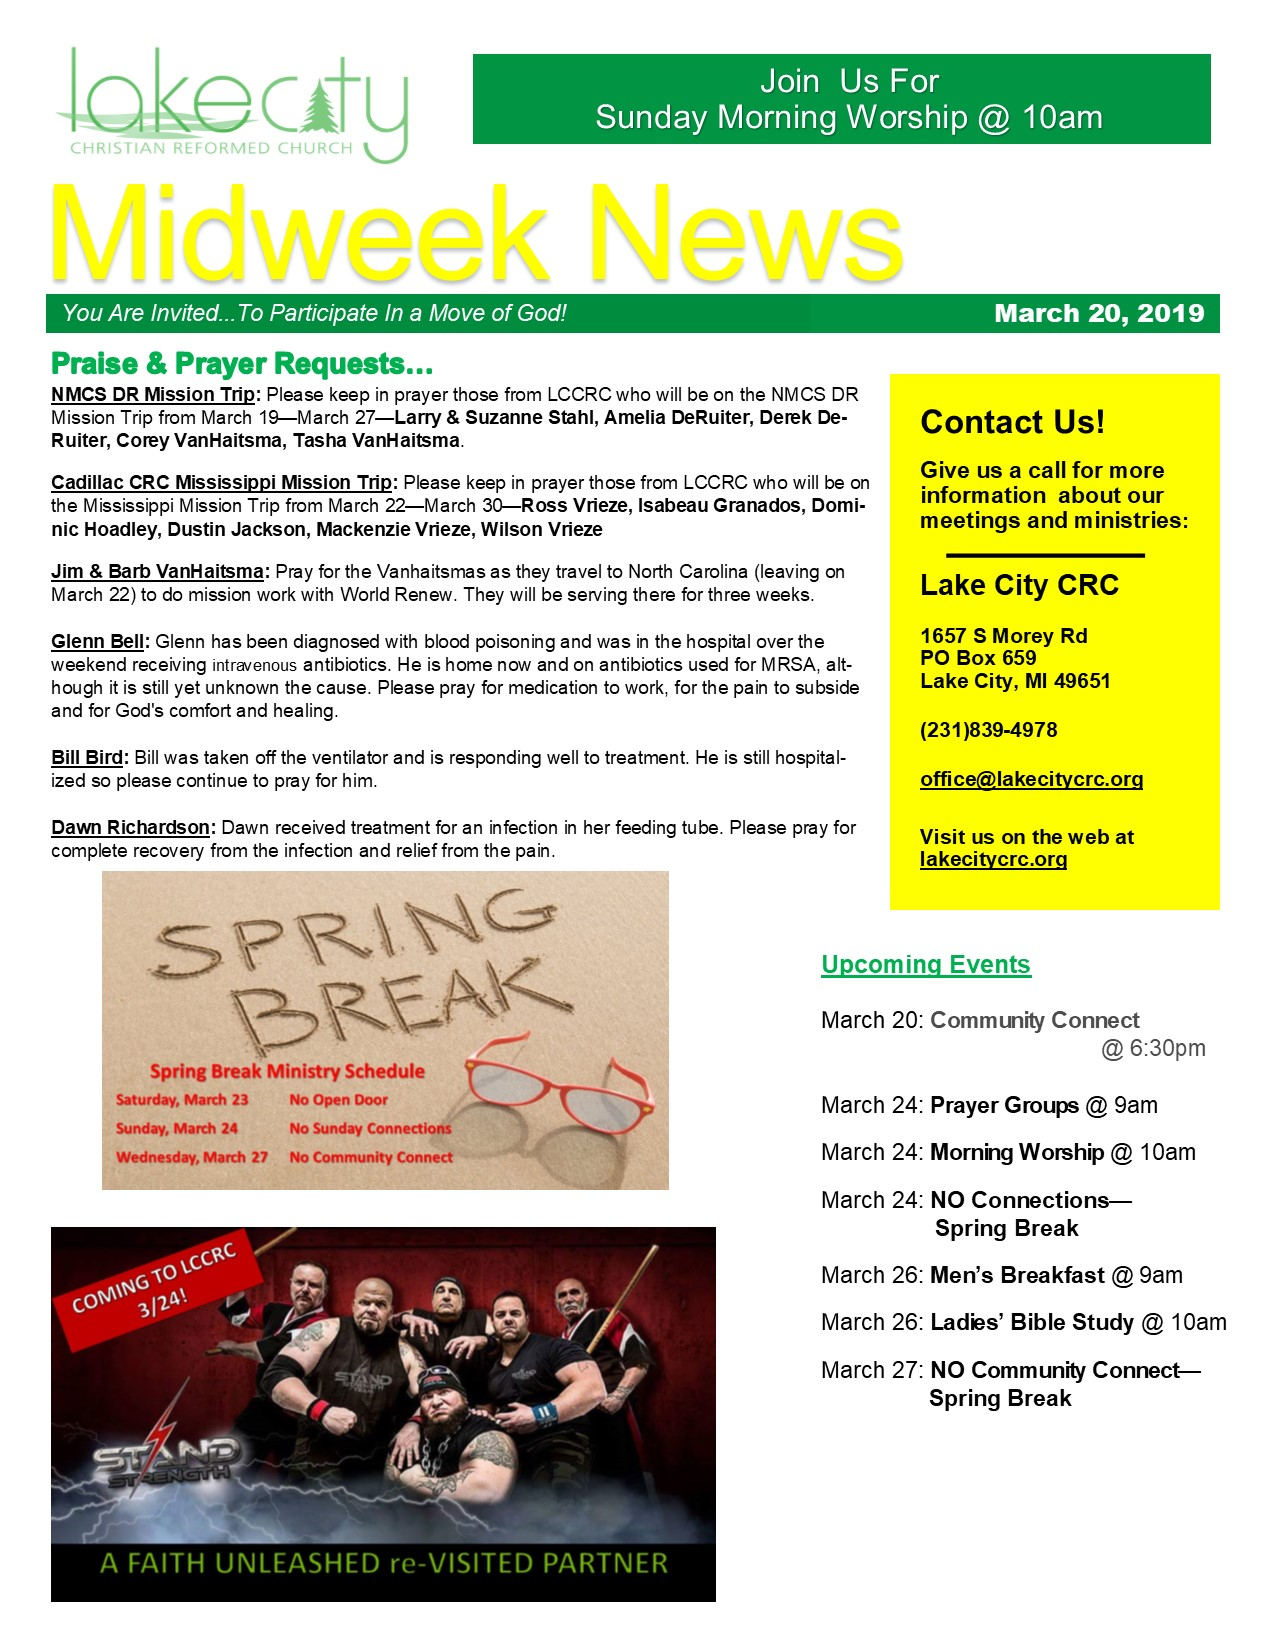 March 20, 2019 Mid-Week News